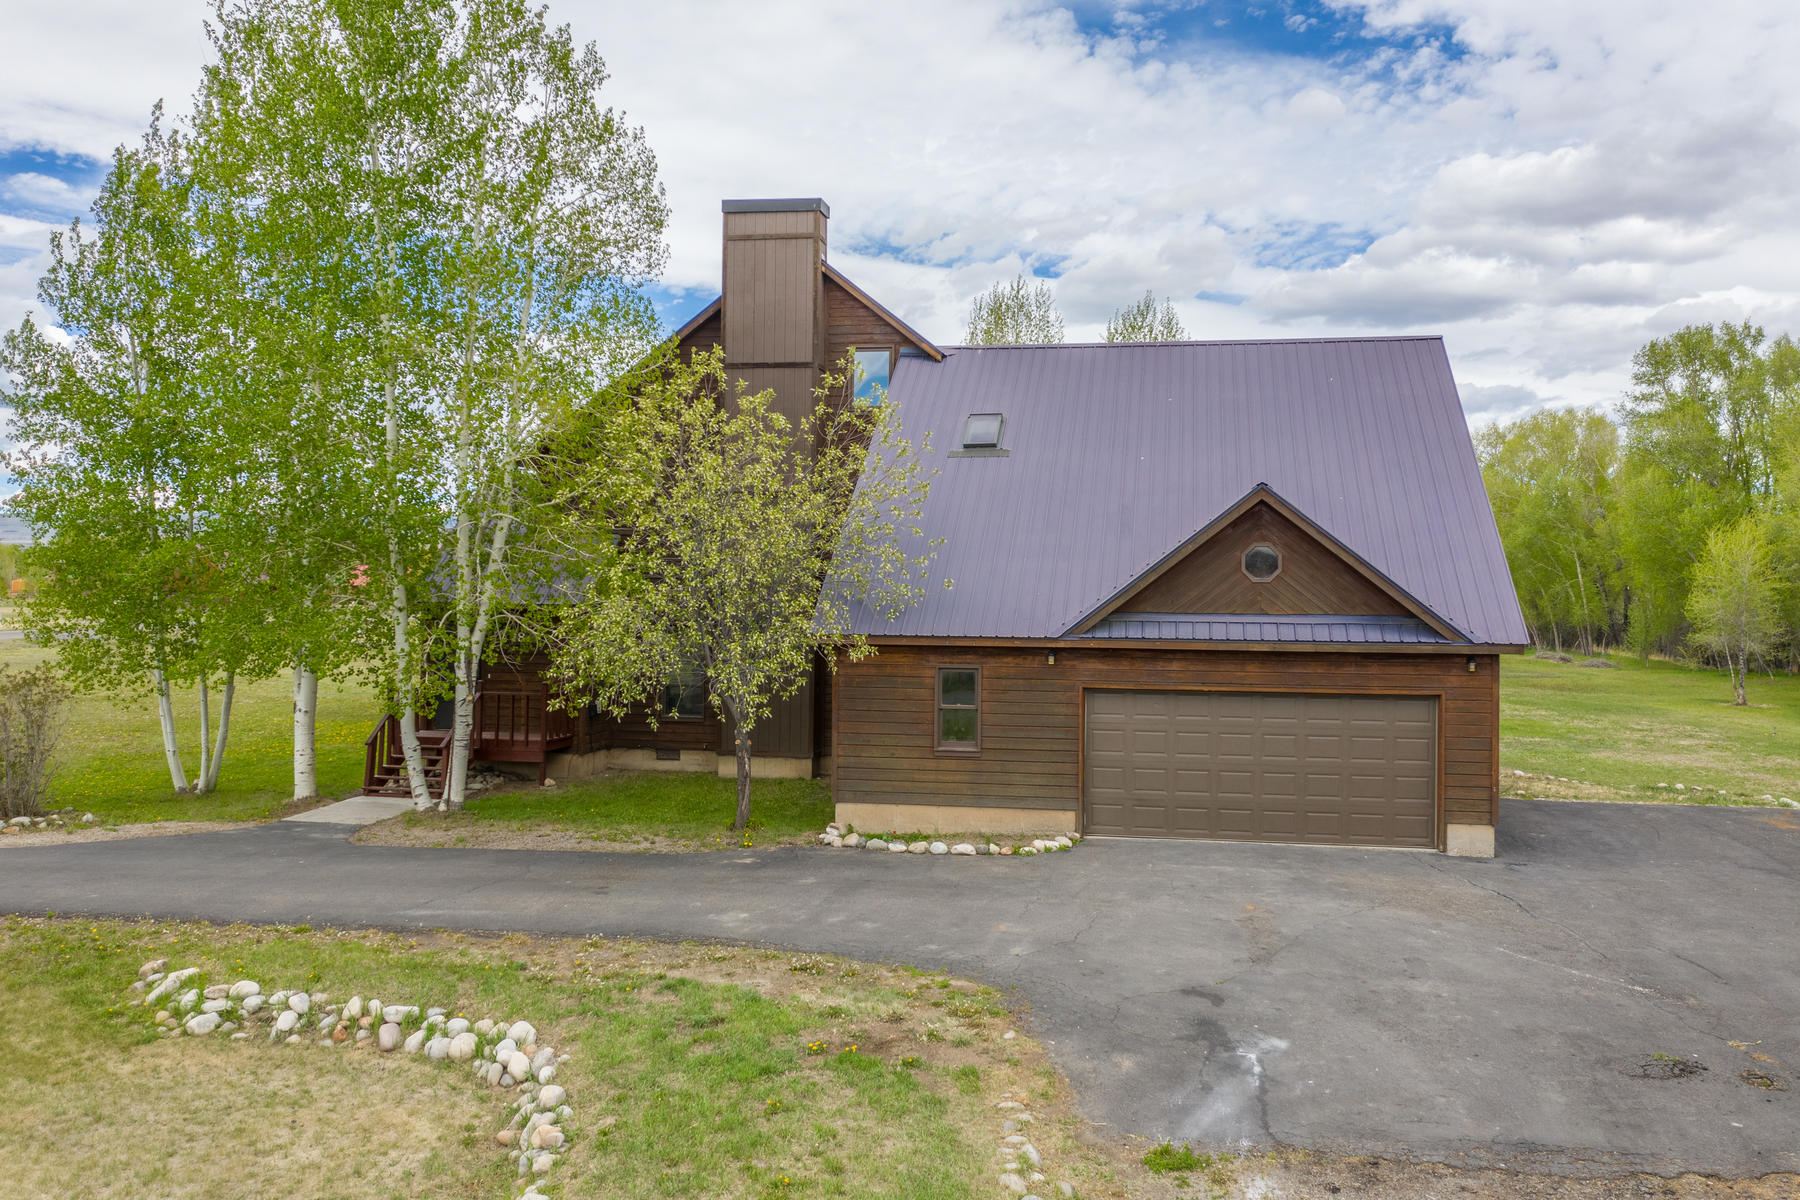 Single Family Homes for Sale at Wonderful Family Home in Exceptional Location 18 Mallard Point Drive Gunnison, Colorado 81230 United States